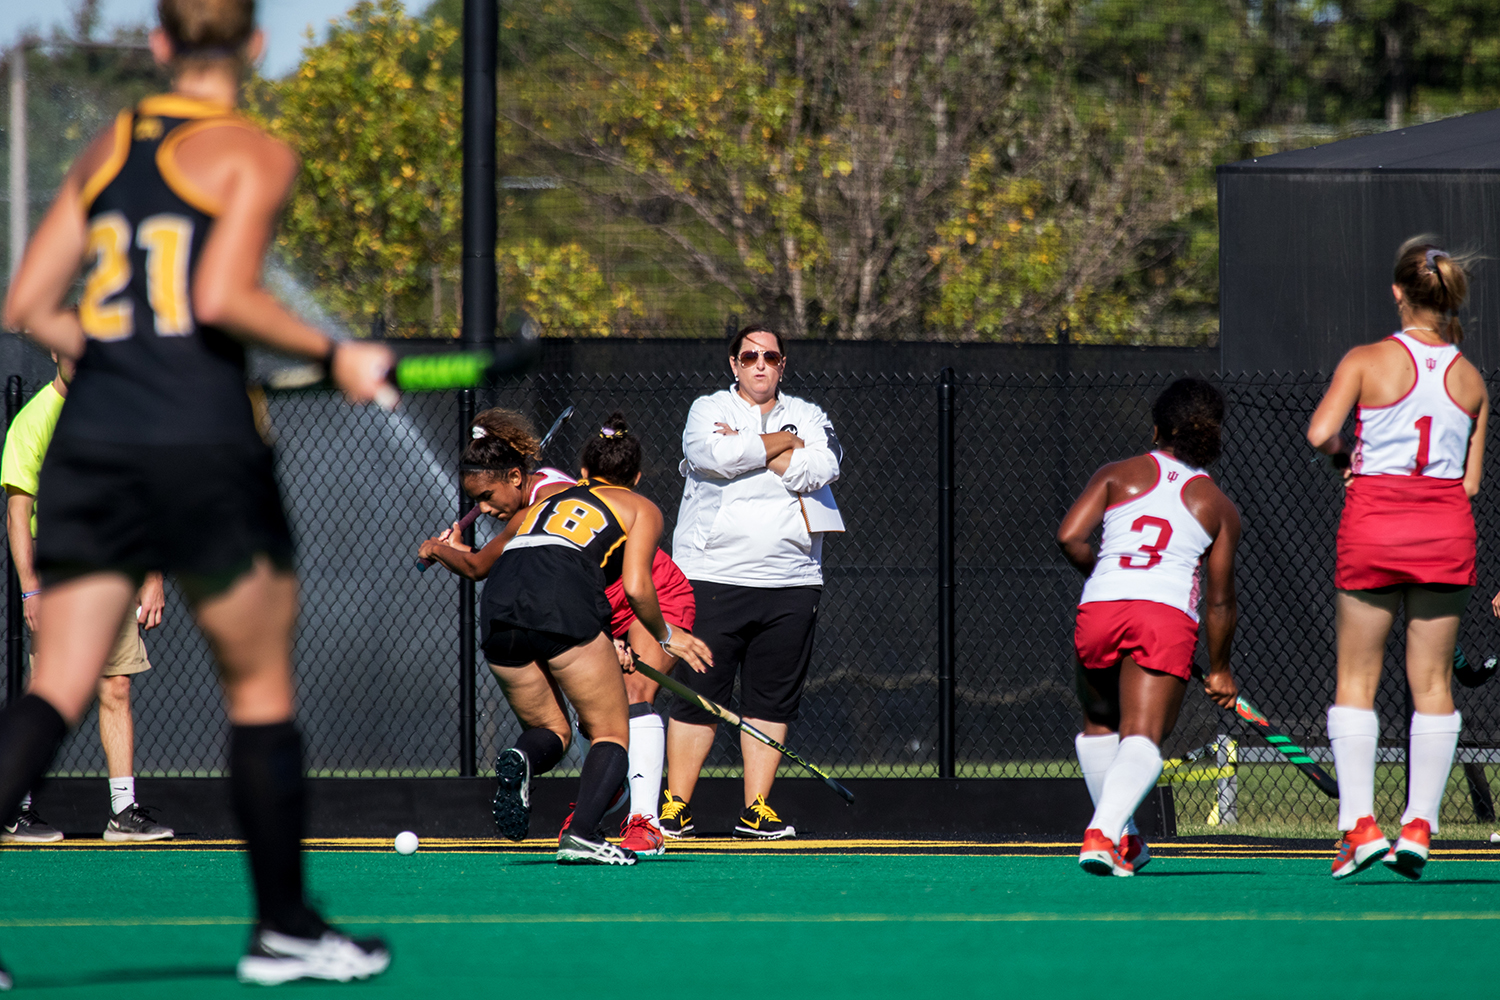 Head Coach Lisa Cellucci watches from the sideline as the Iowa Field Hockey team plays Indiana on Friday, Sept. 29, 2017. Iowa won the match 4-3.